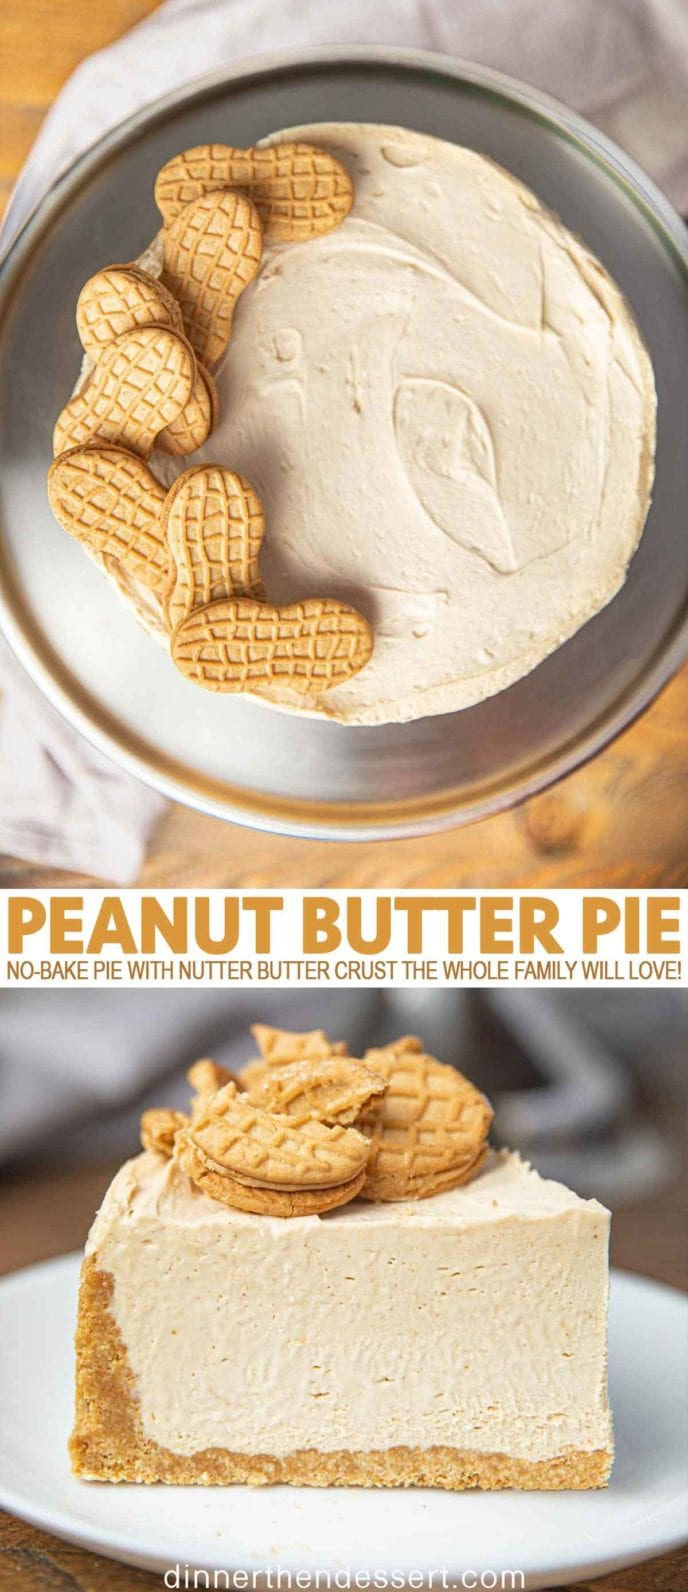 Peanut Butter Pie with Nutter Butter Cookies